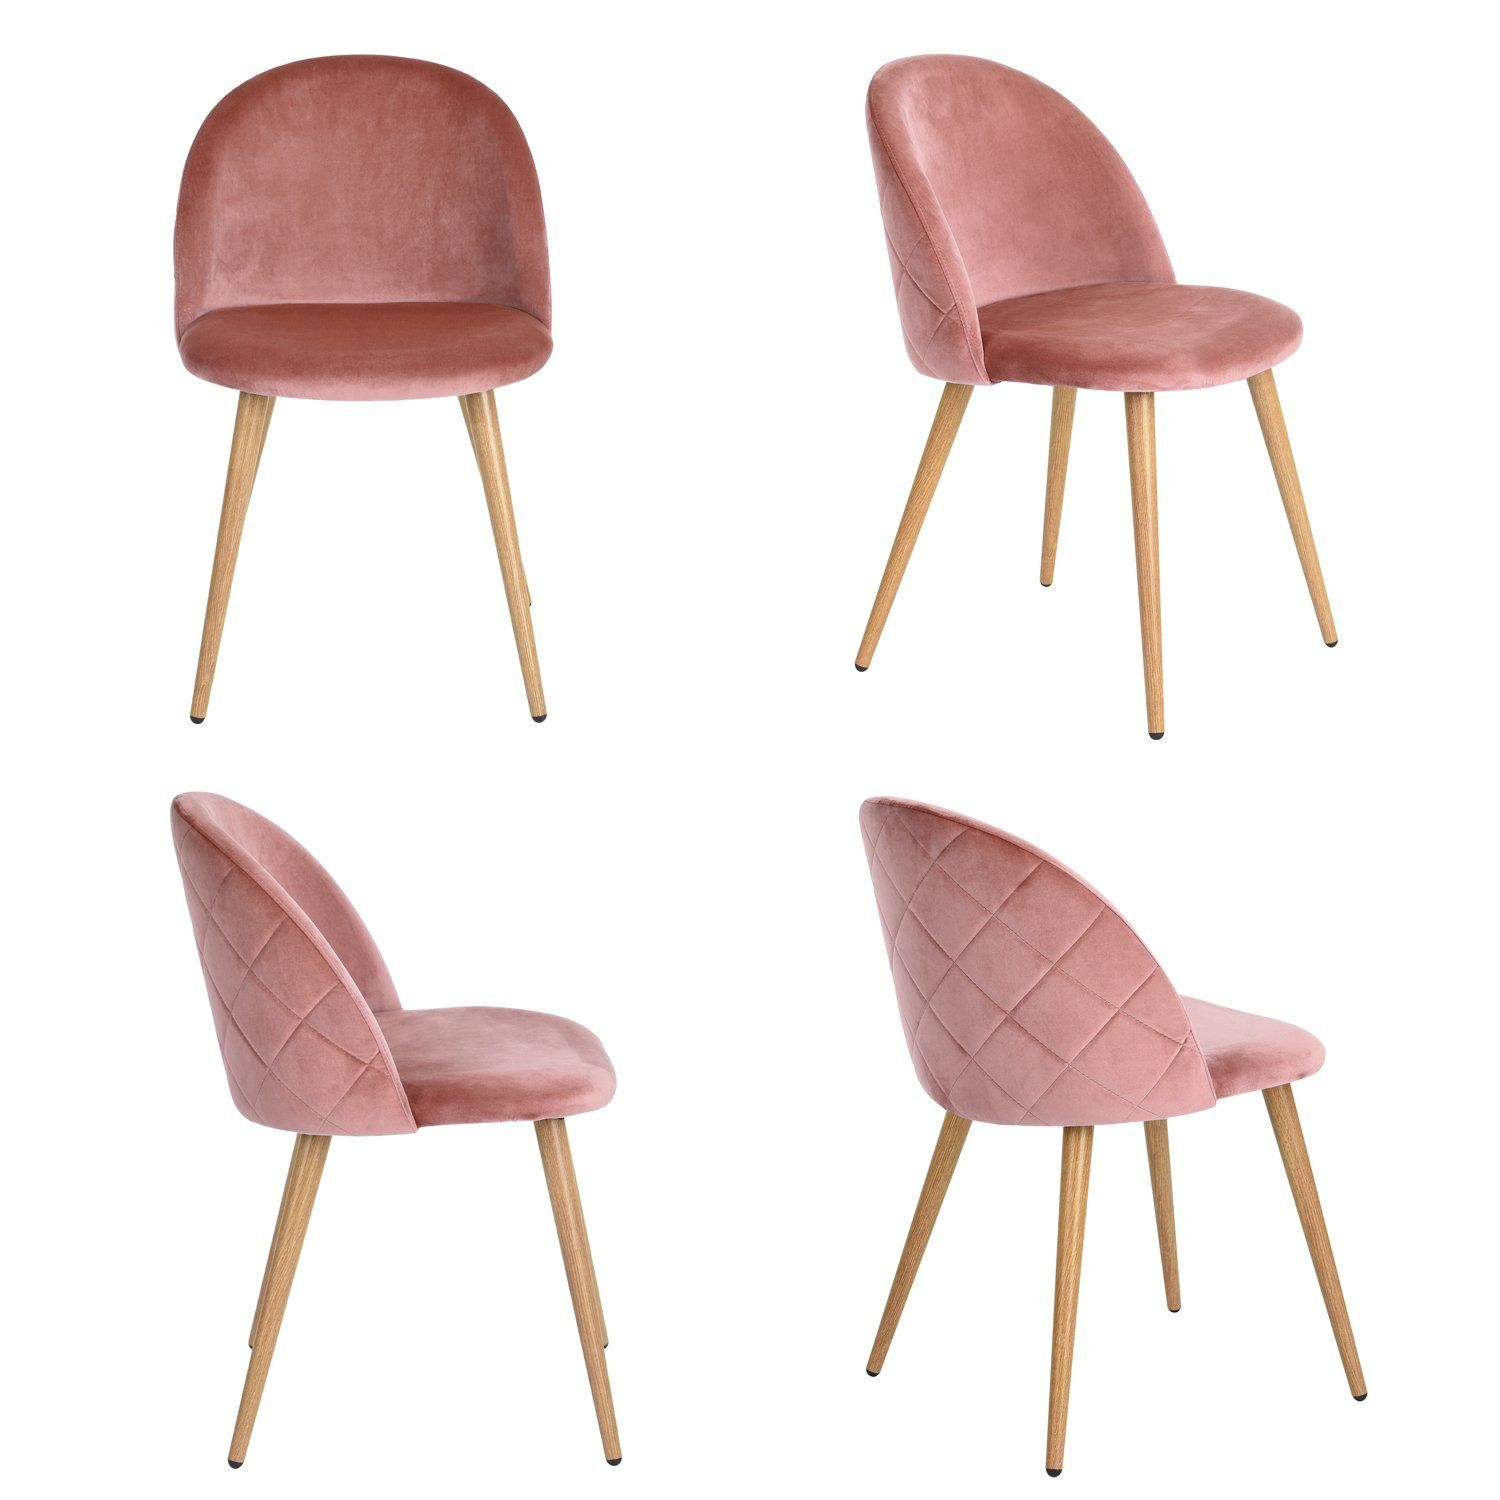 Dining Chairs Coavas Soft Velvet Seat And Back With Wooden Style Metal Legs Kitchen Chairs For Dining And Living Room Chairs Modern Style Chairs Dining Chairs